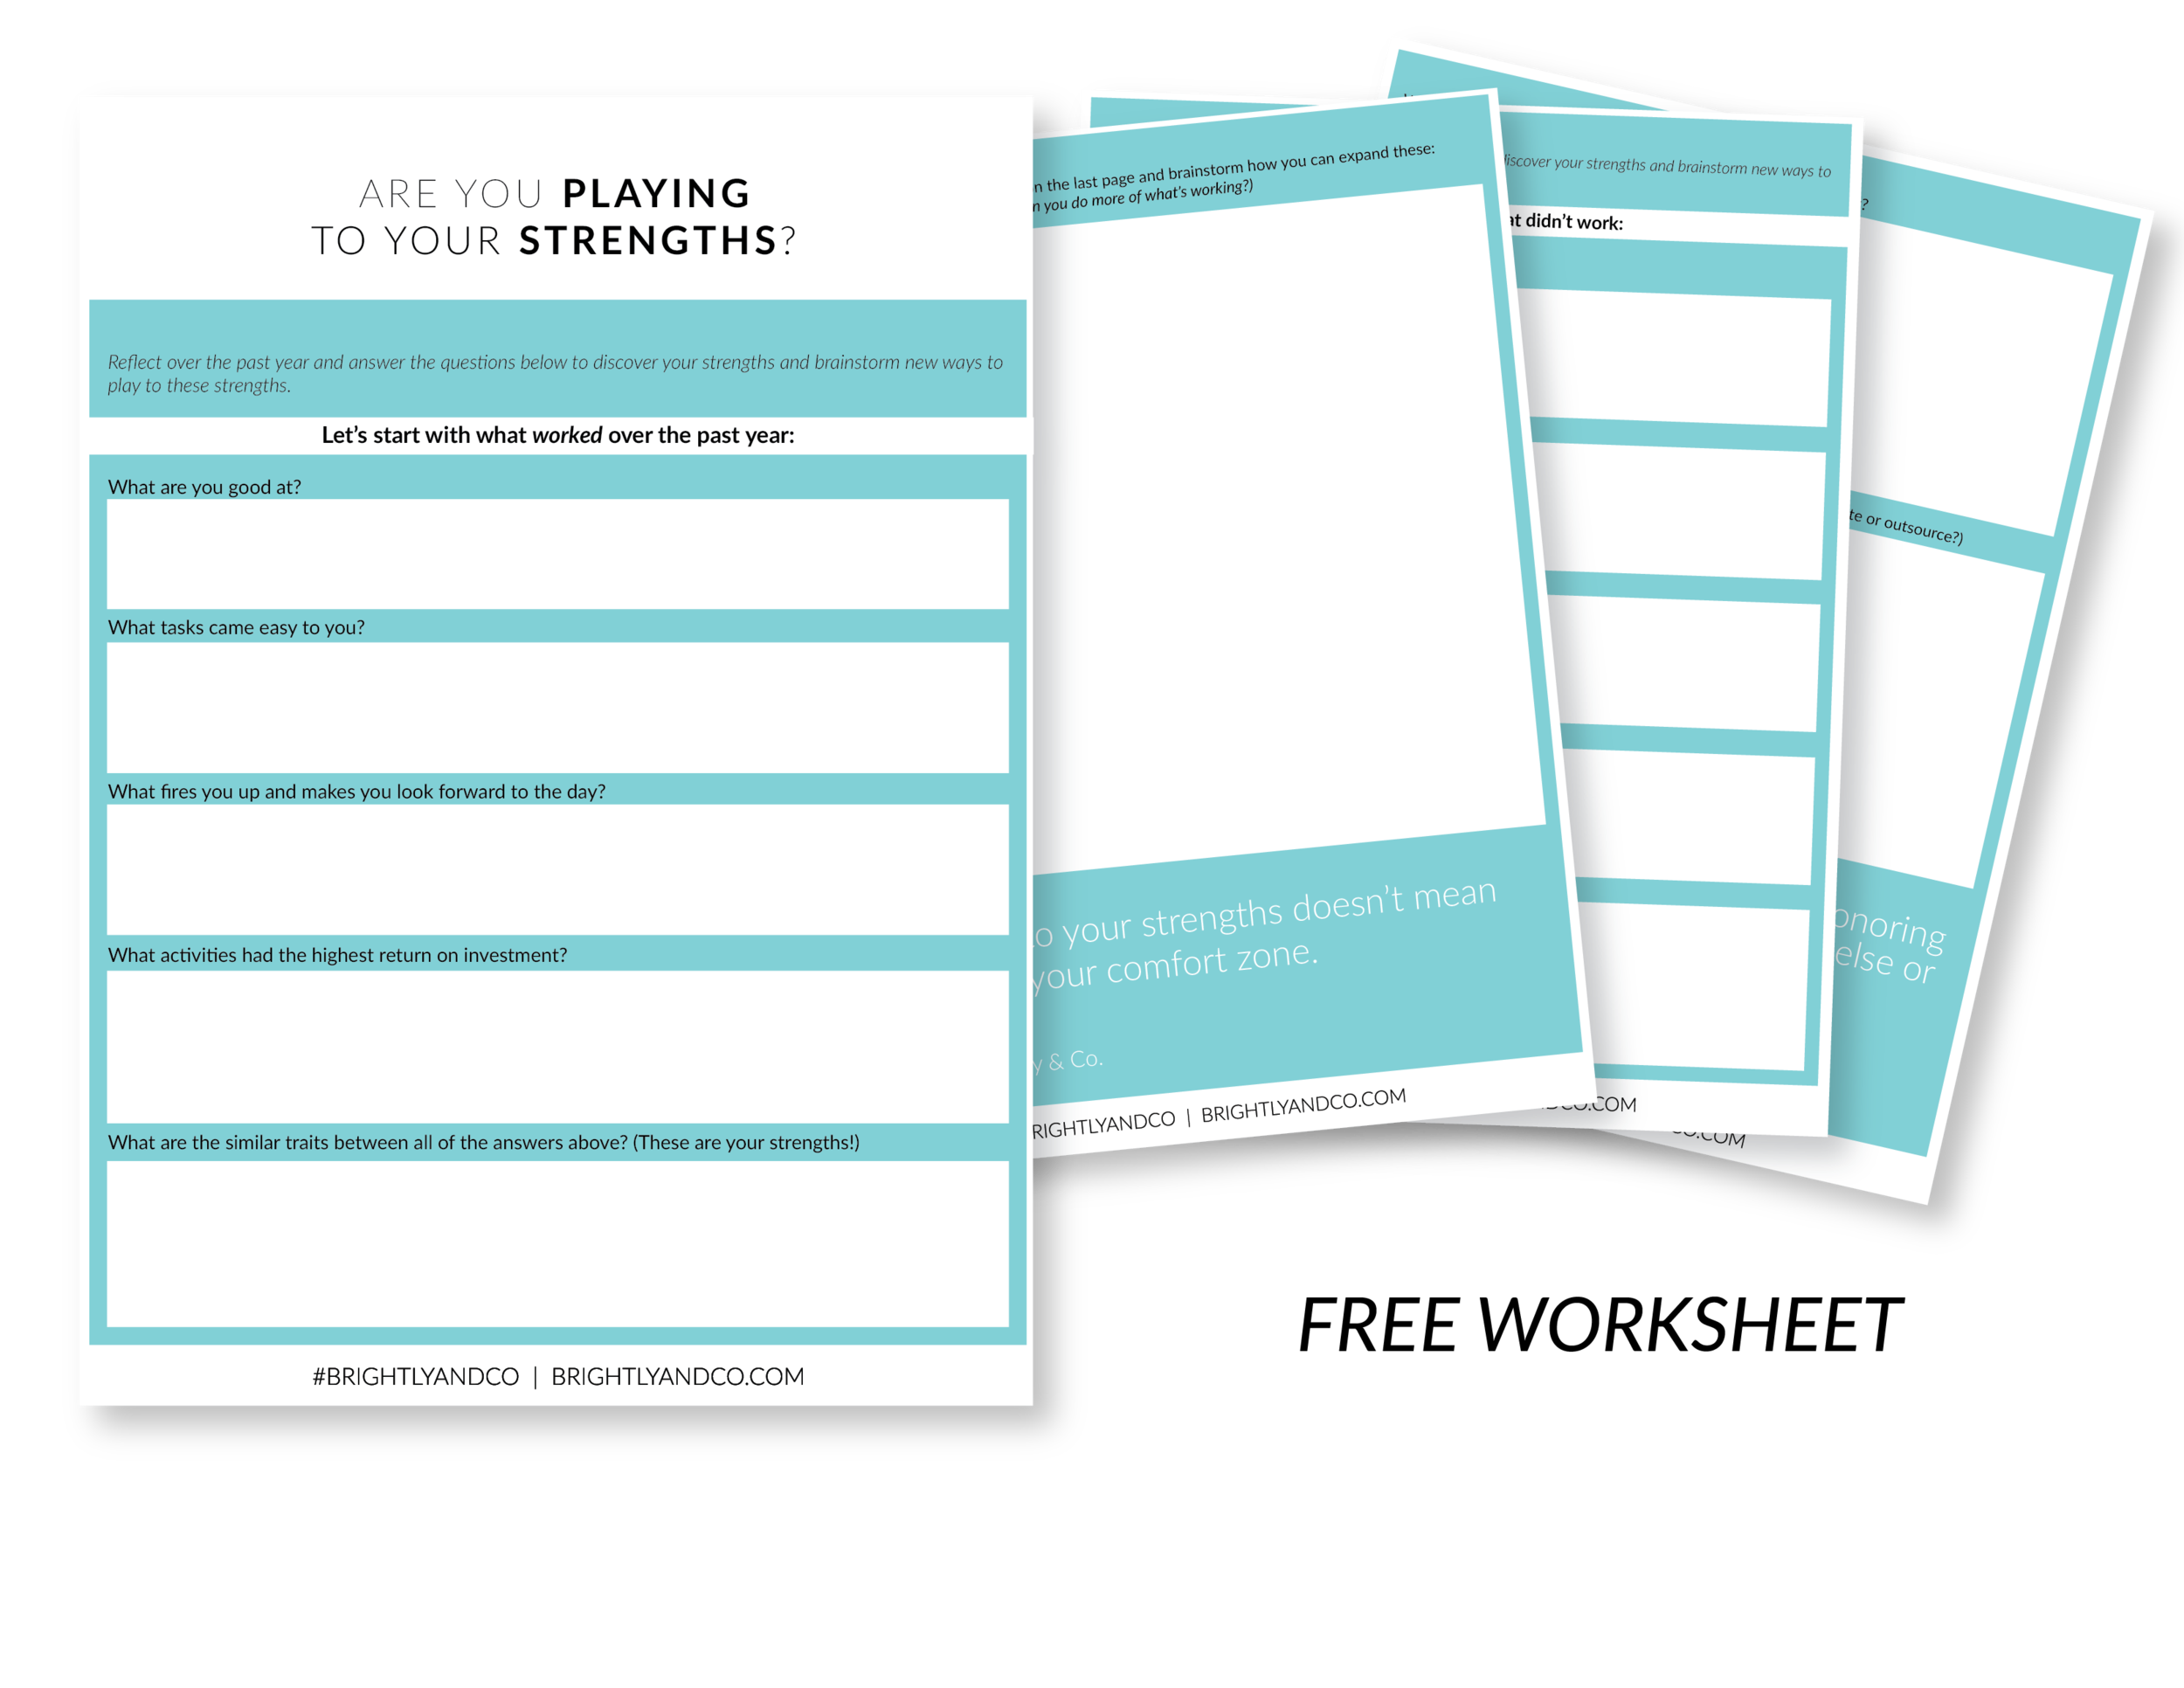 Free Worksheet - Are you playing to your strengths - Brightly & Co.